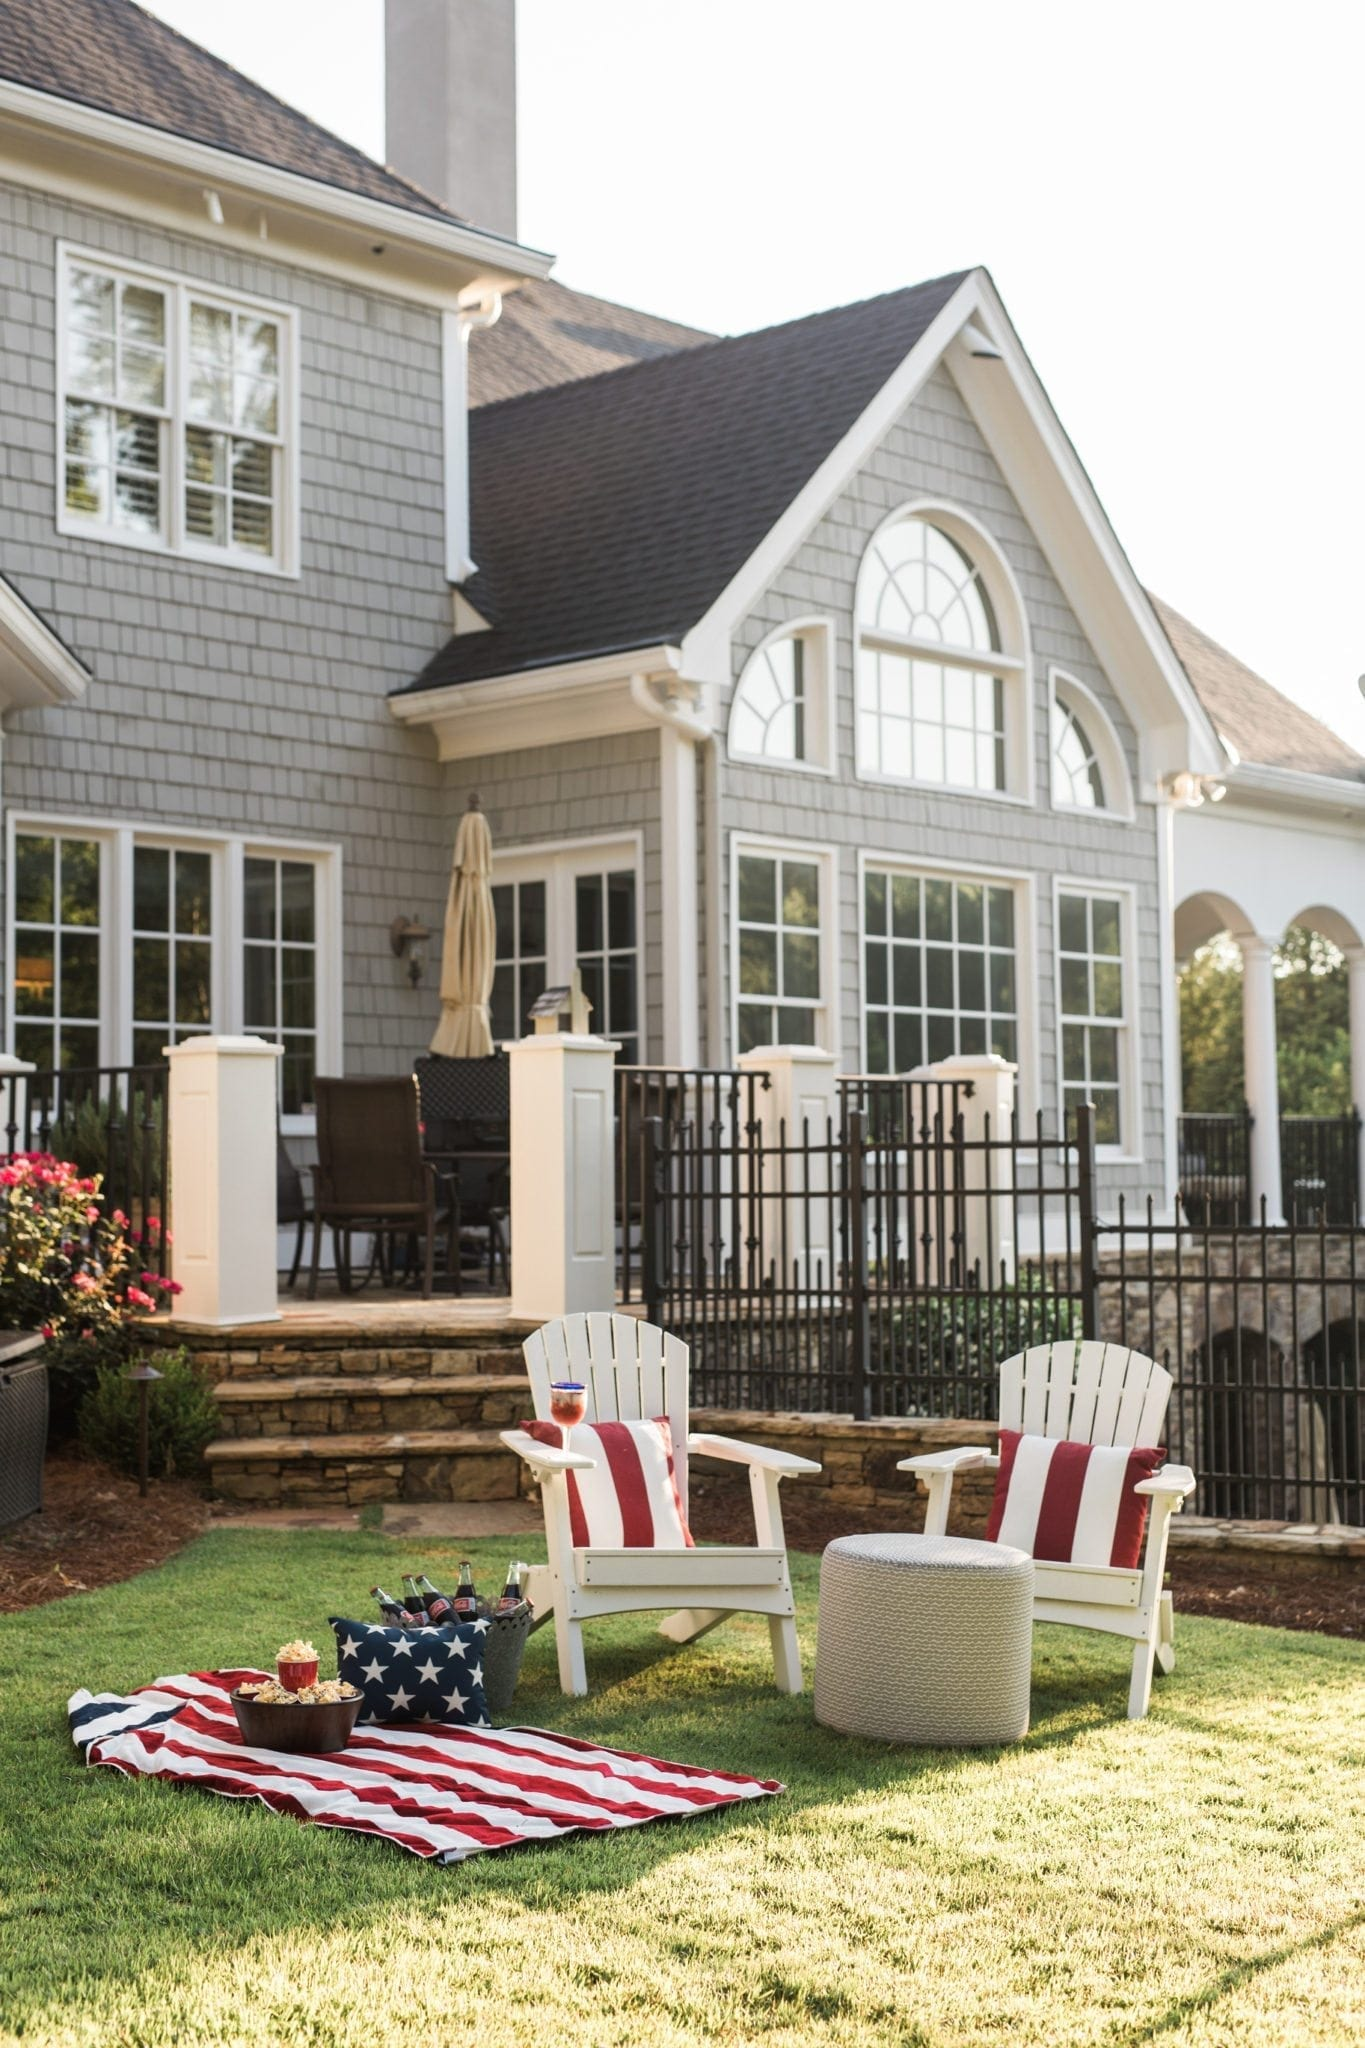 White wood adirondack chairs with red and white strip outdoor pillows set the stage for a Fourth of July backyard party. Gray shingle house Cape Cod style house with Americana felt an outdoor porch setting.